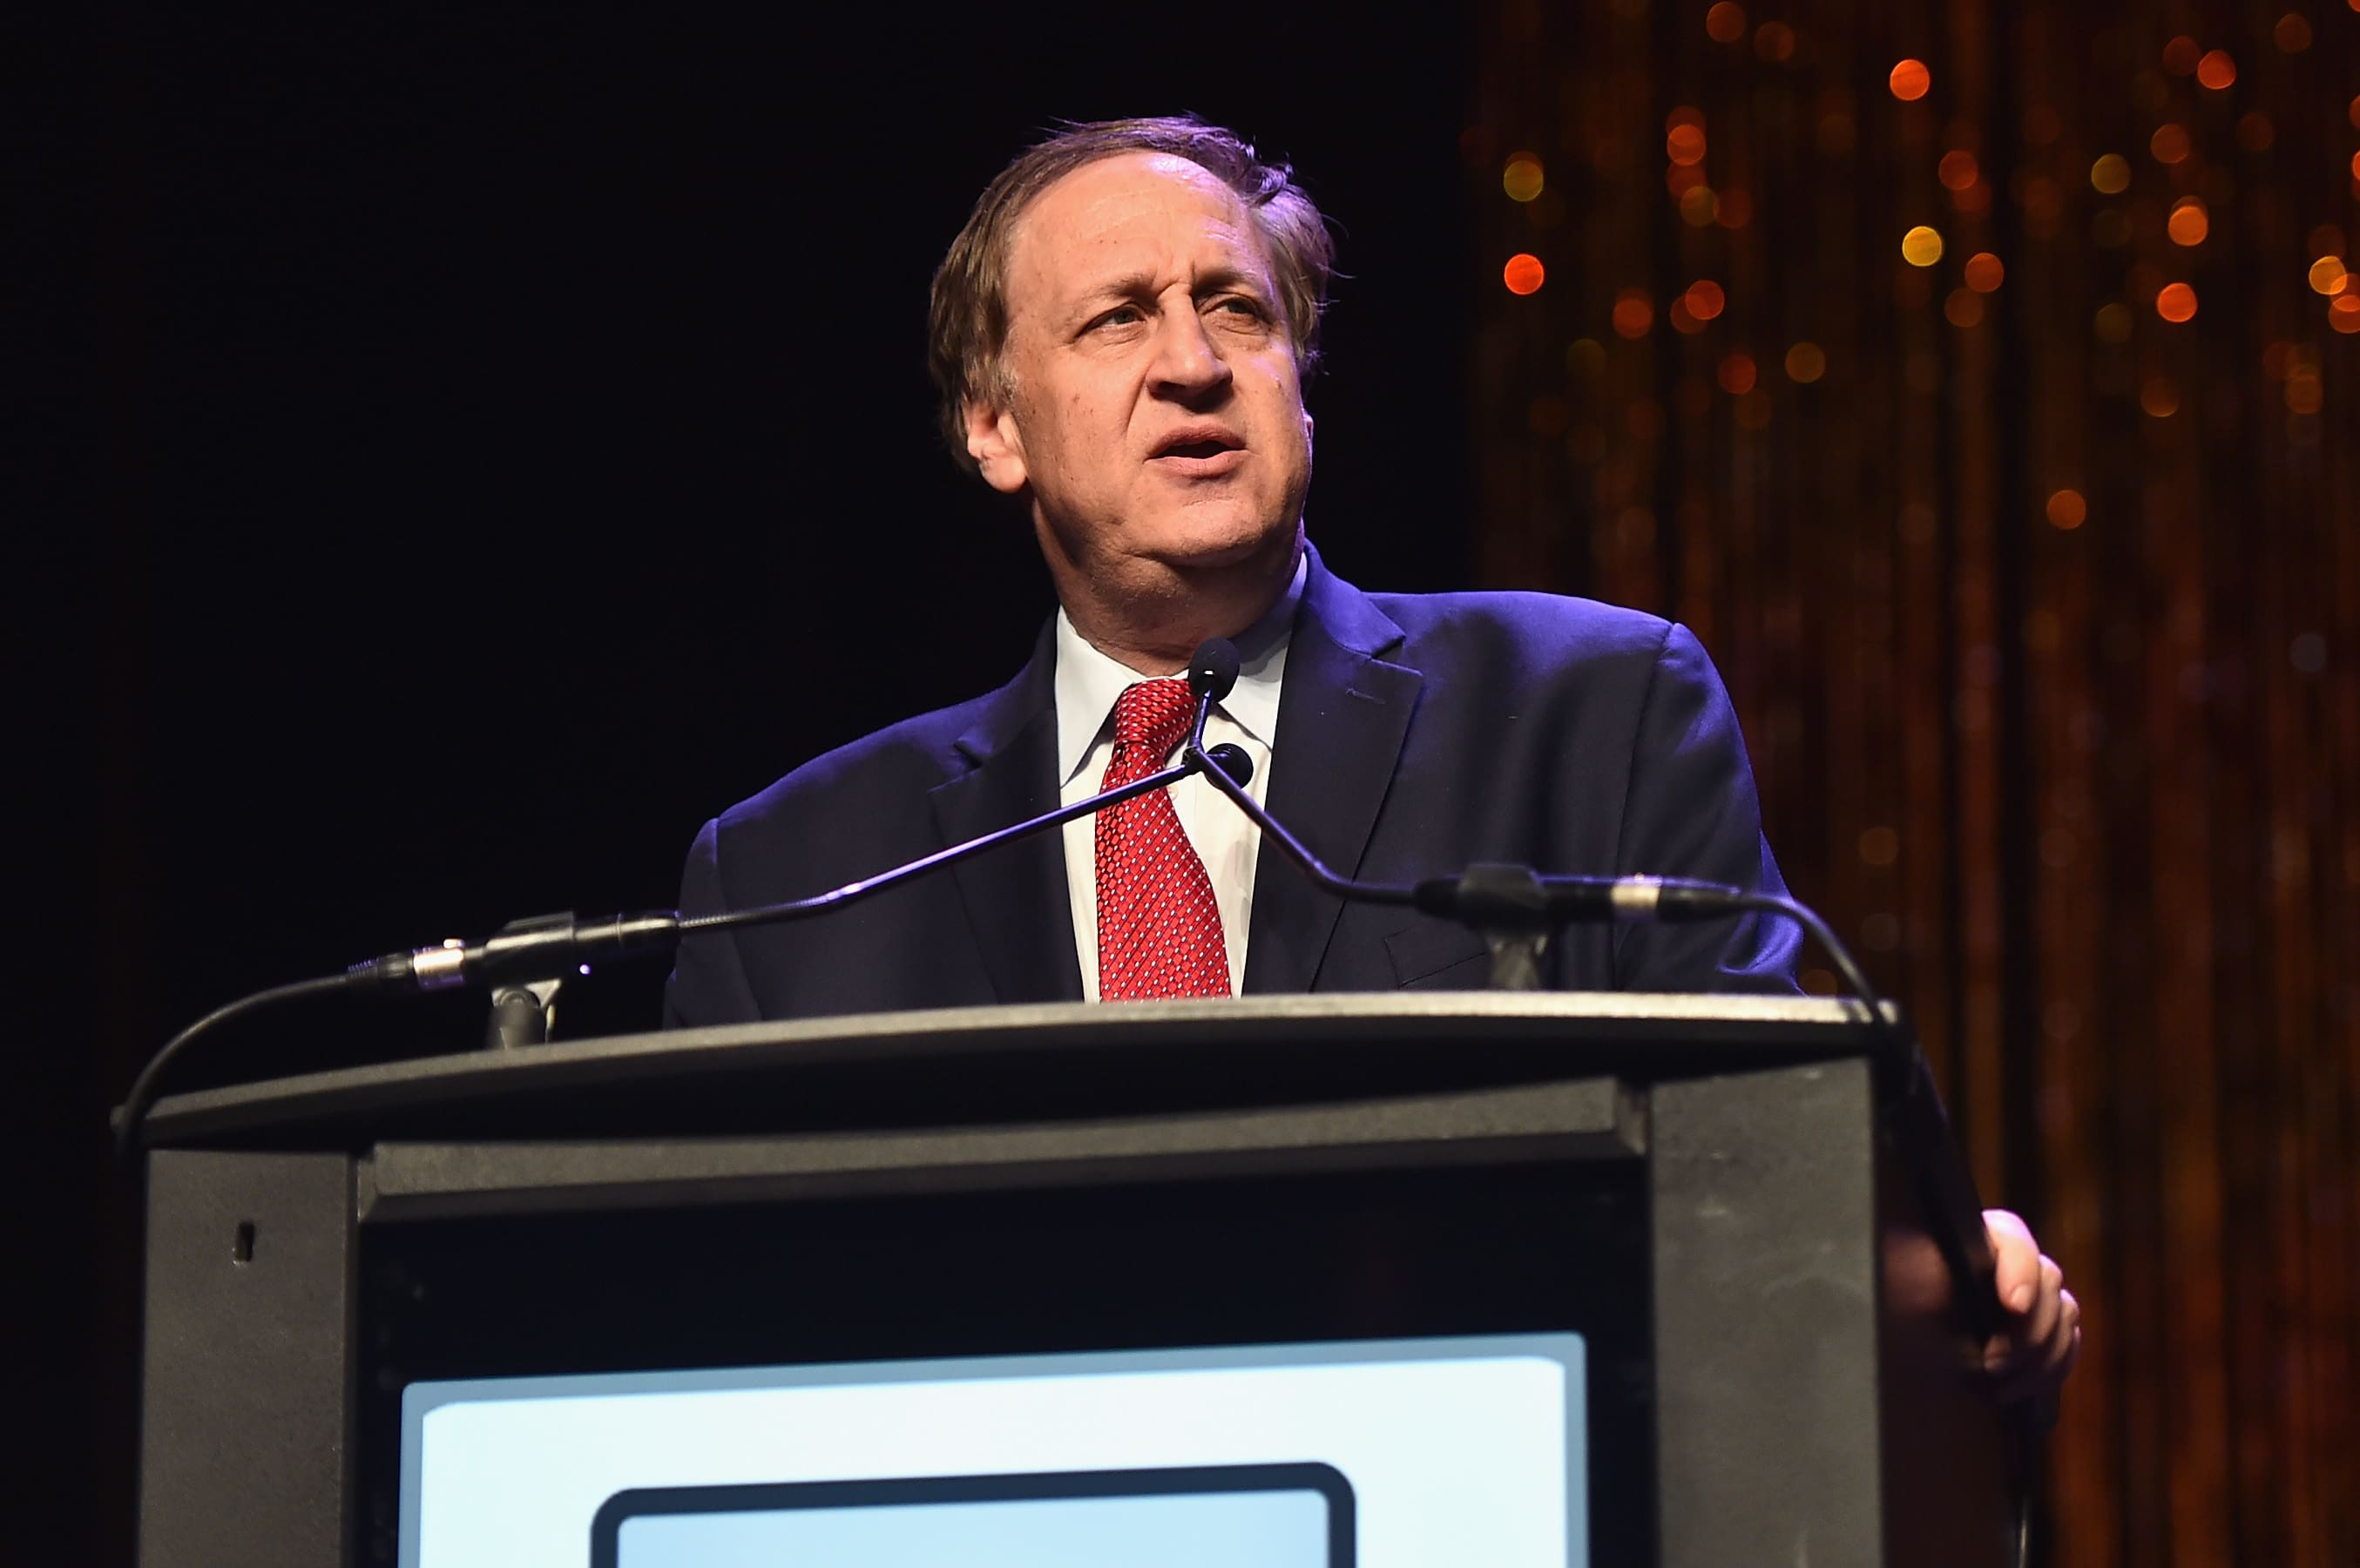 AMC CEO Adam Aron urges shareholders to support plan to issue 25 million shares